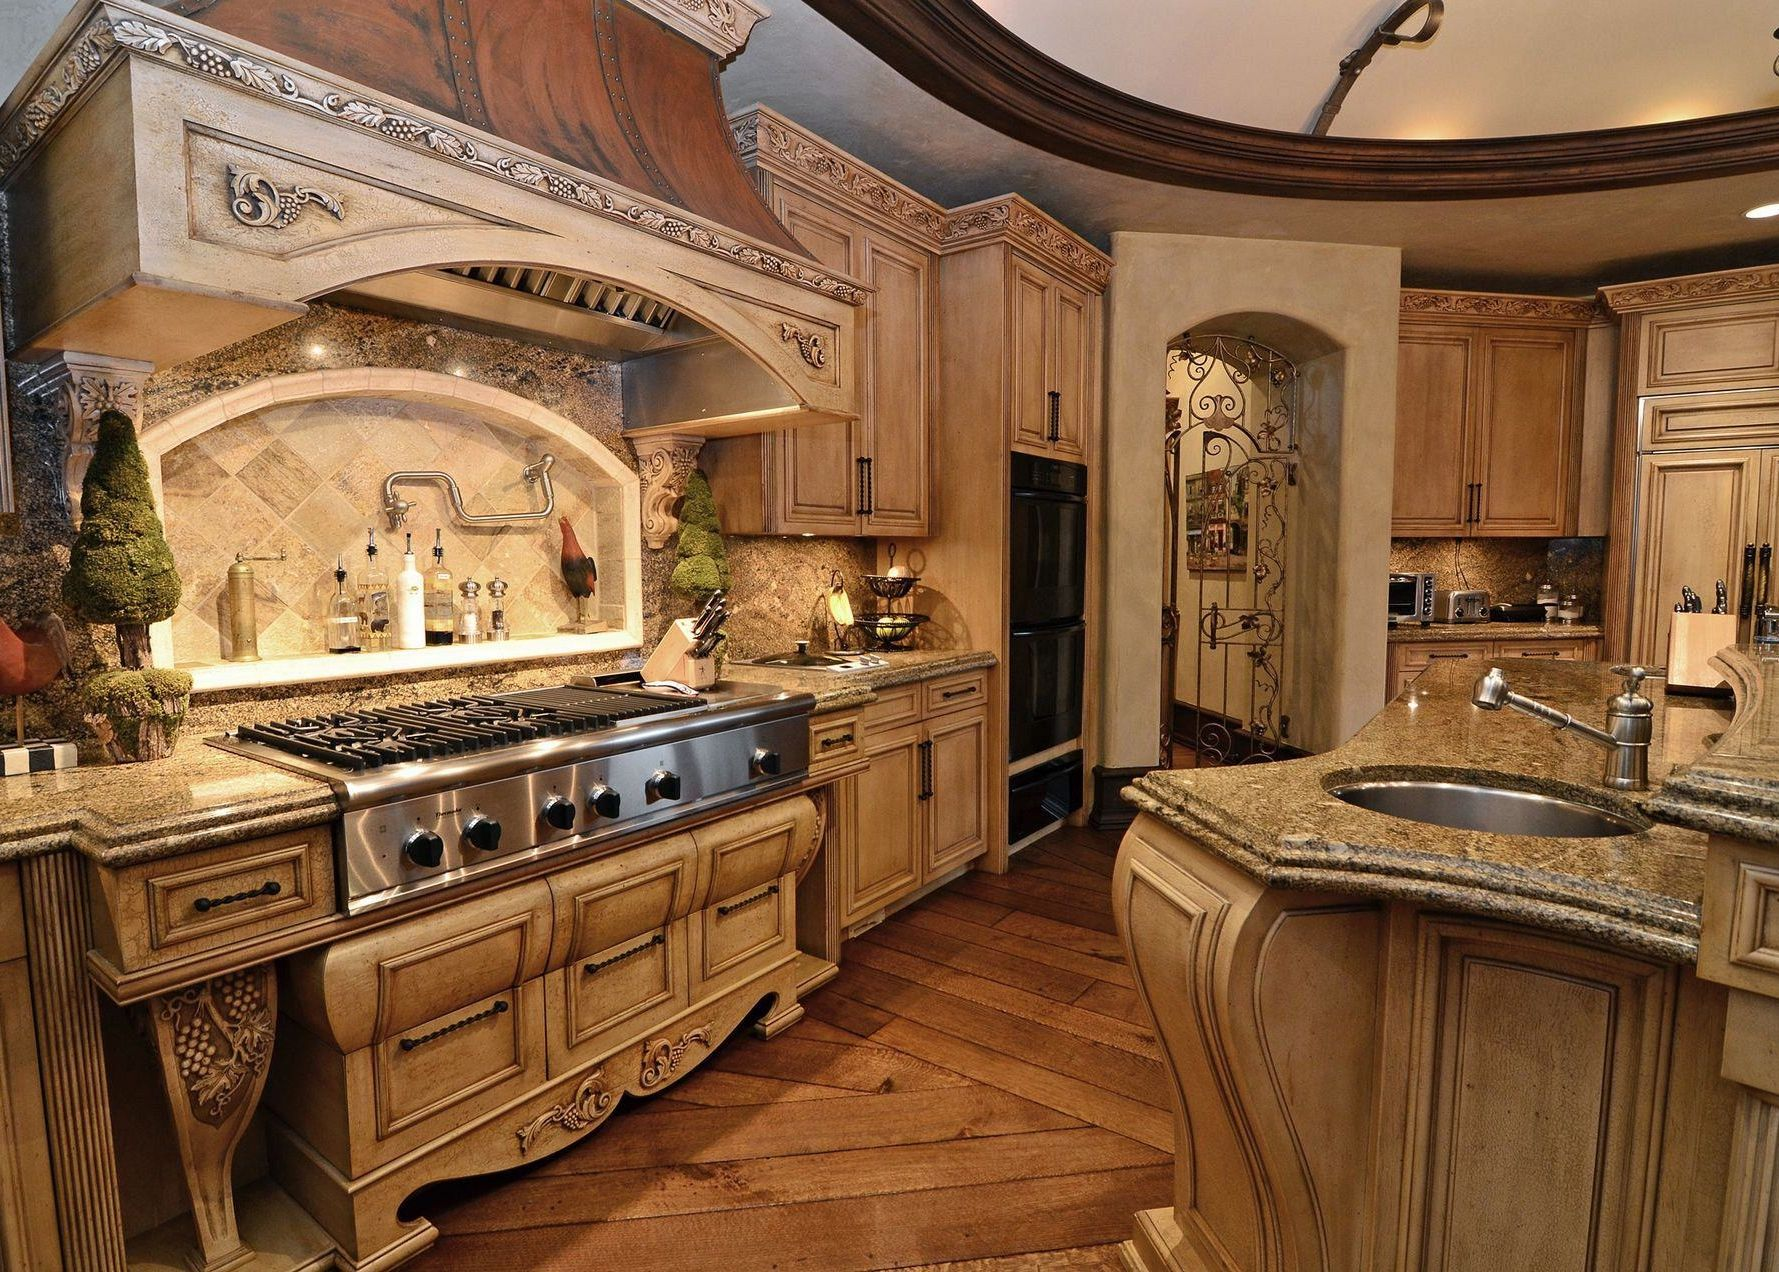 old world kitchens | interior and exterior design ideas | kitchens